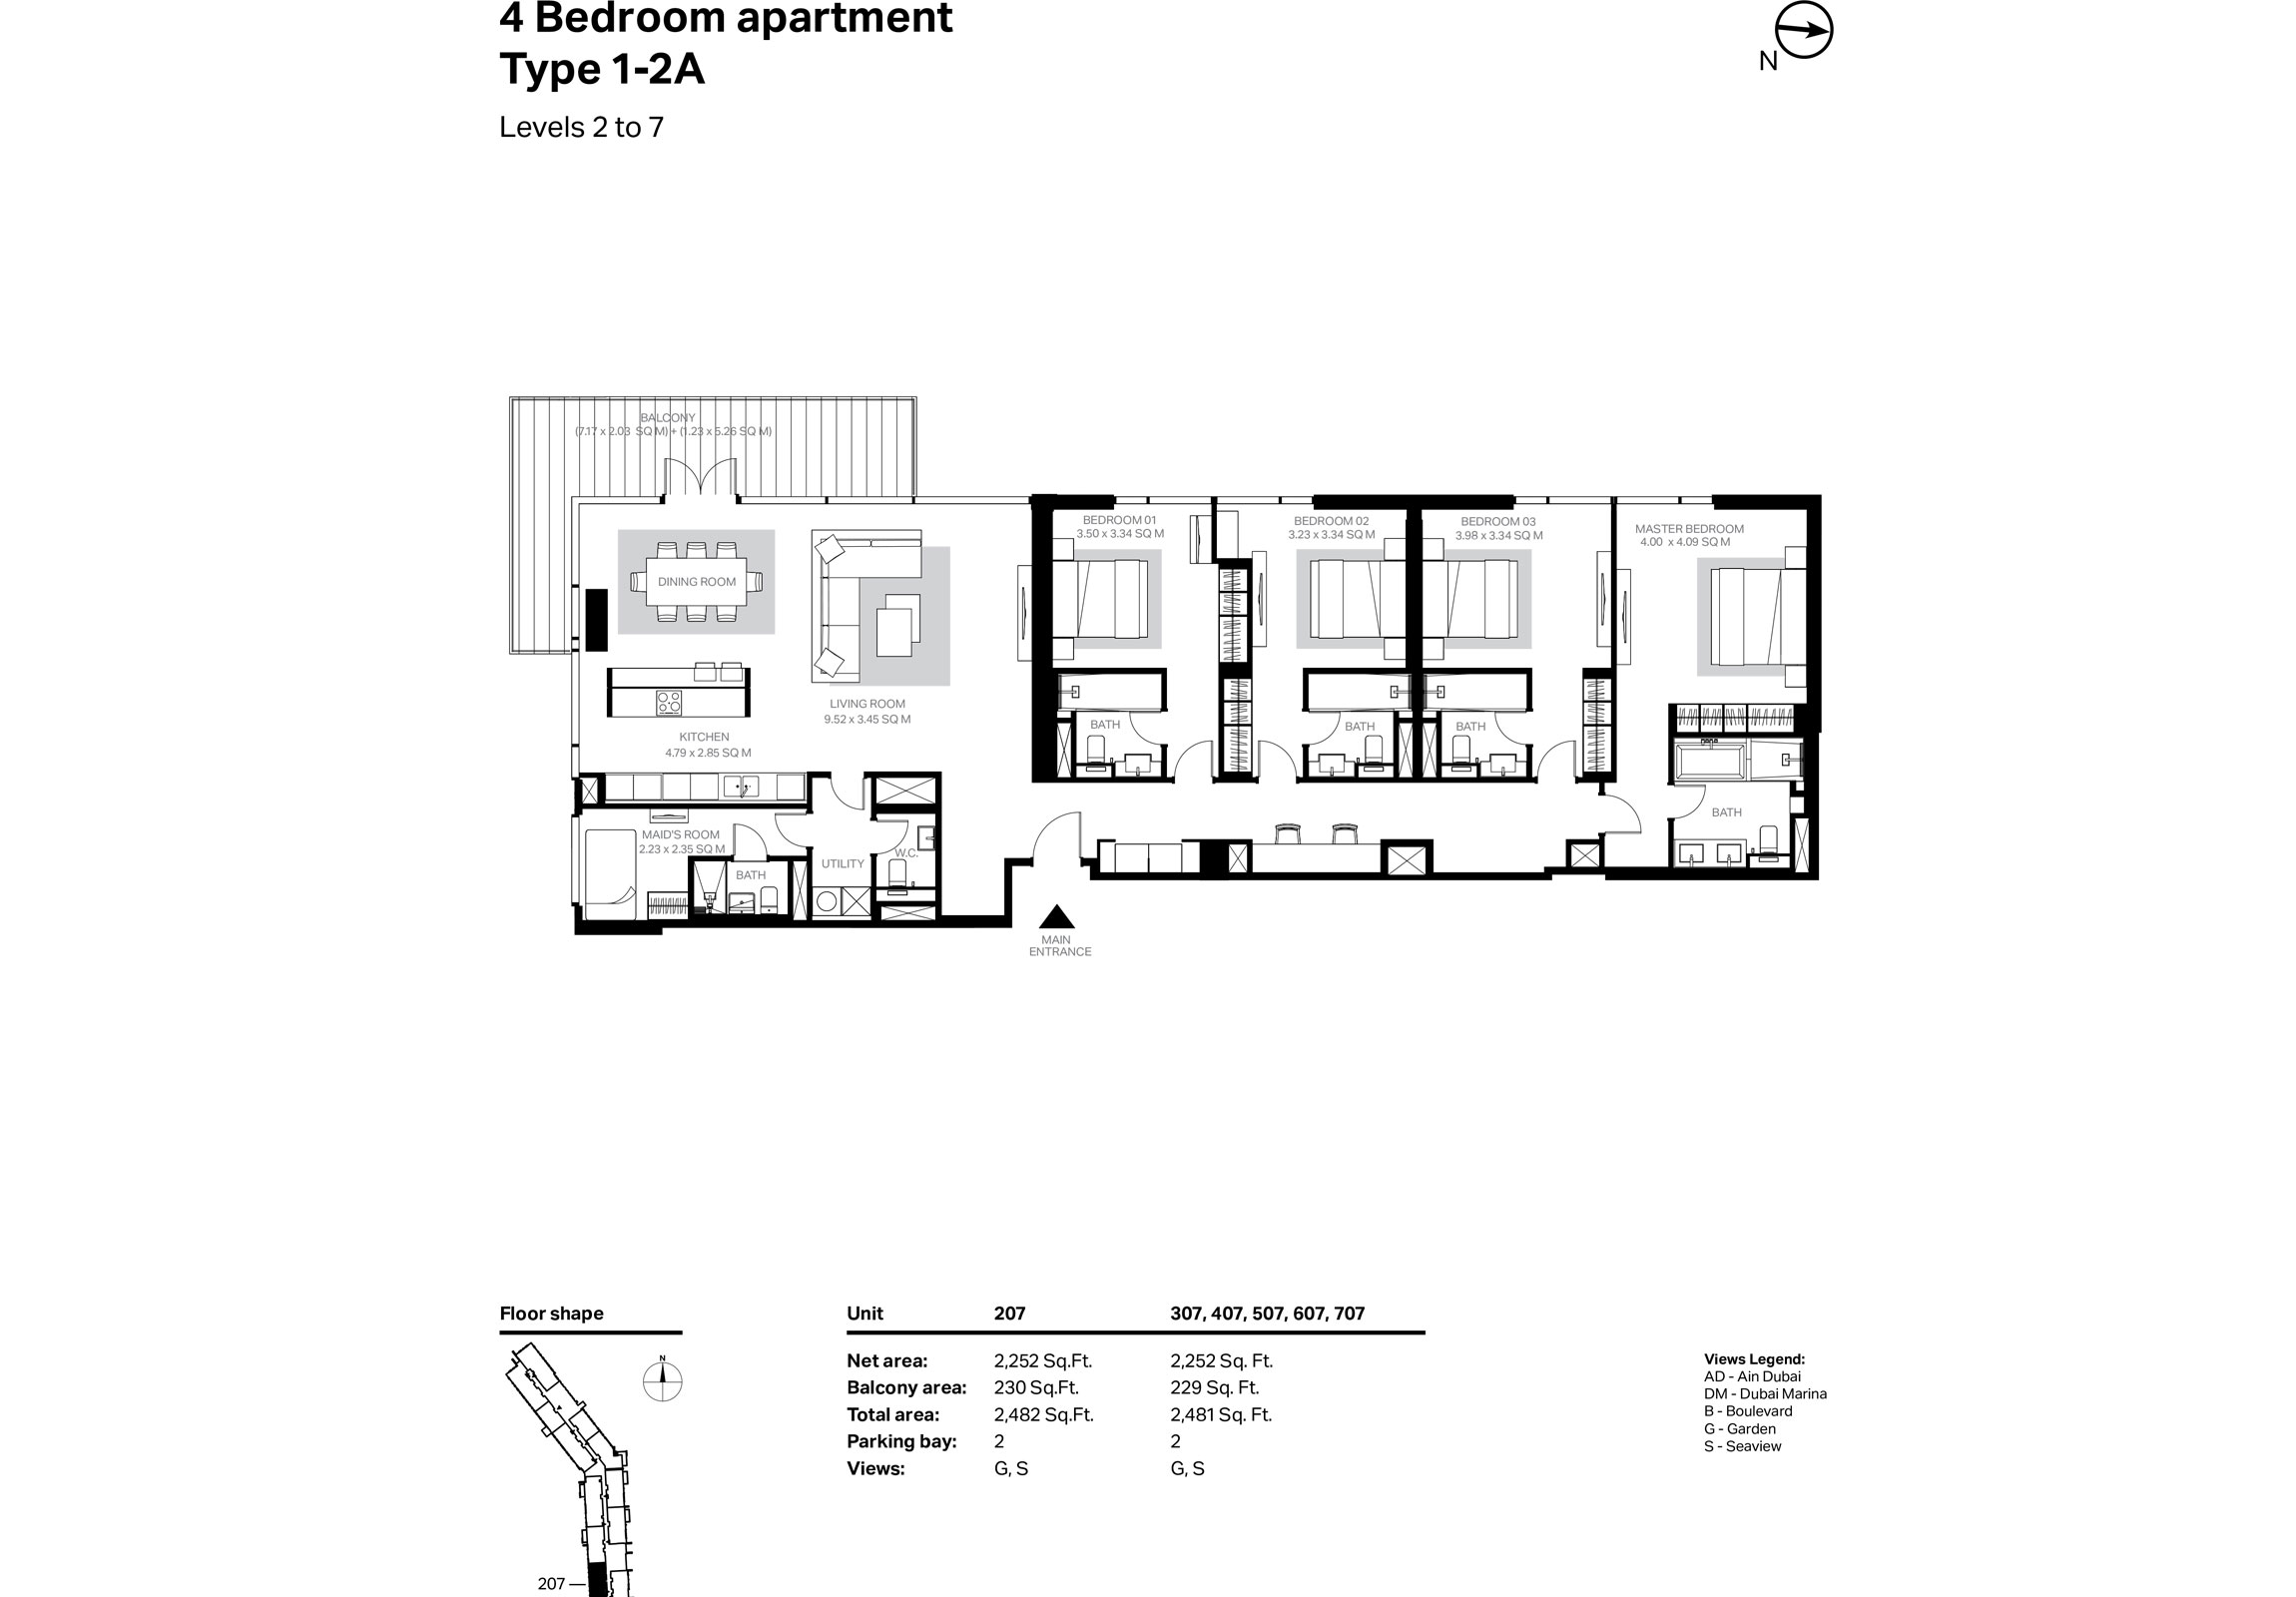 Building 2 - 4 Bedroom Type 1-2A Level 2 To 7 Size 2481    sq. ft.